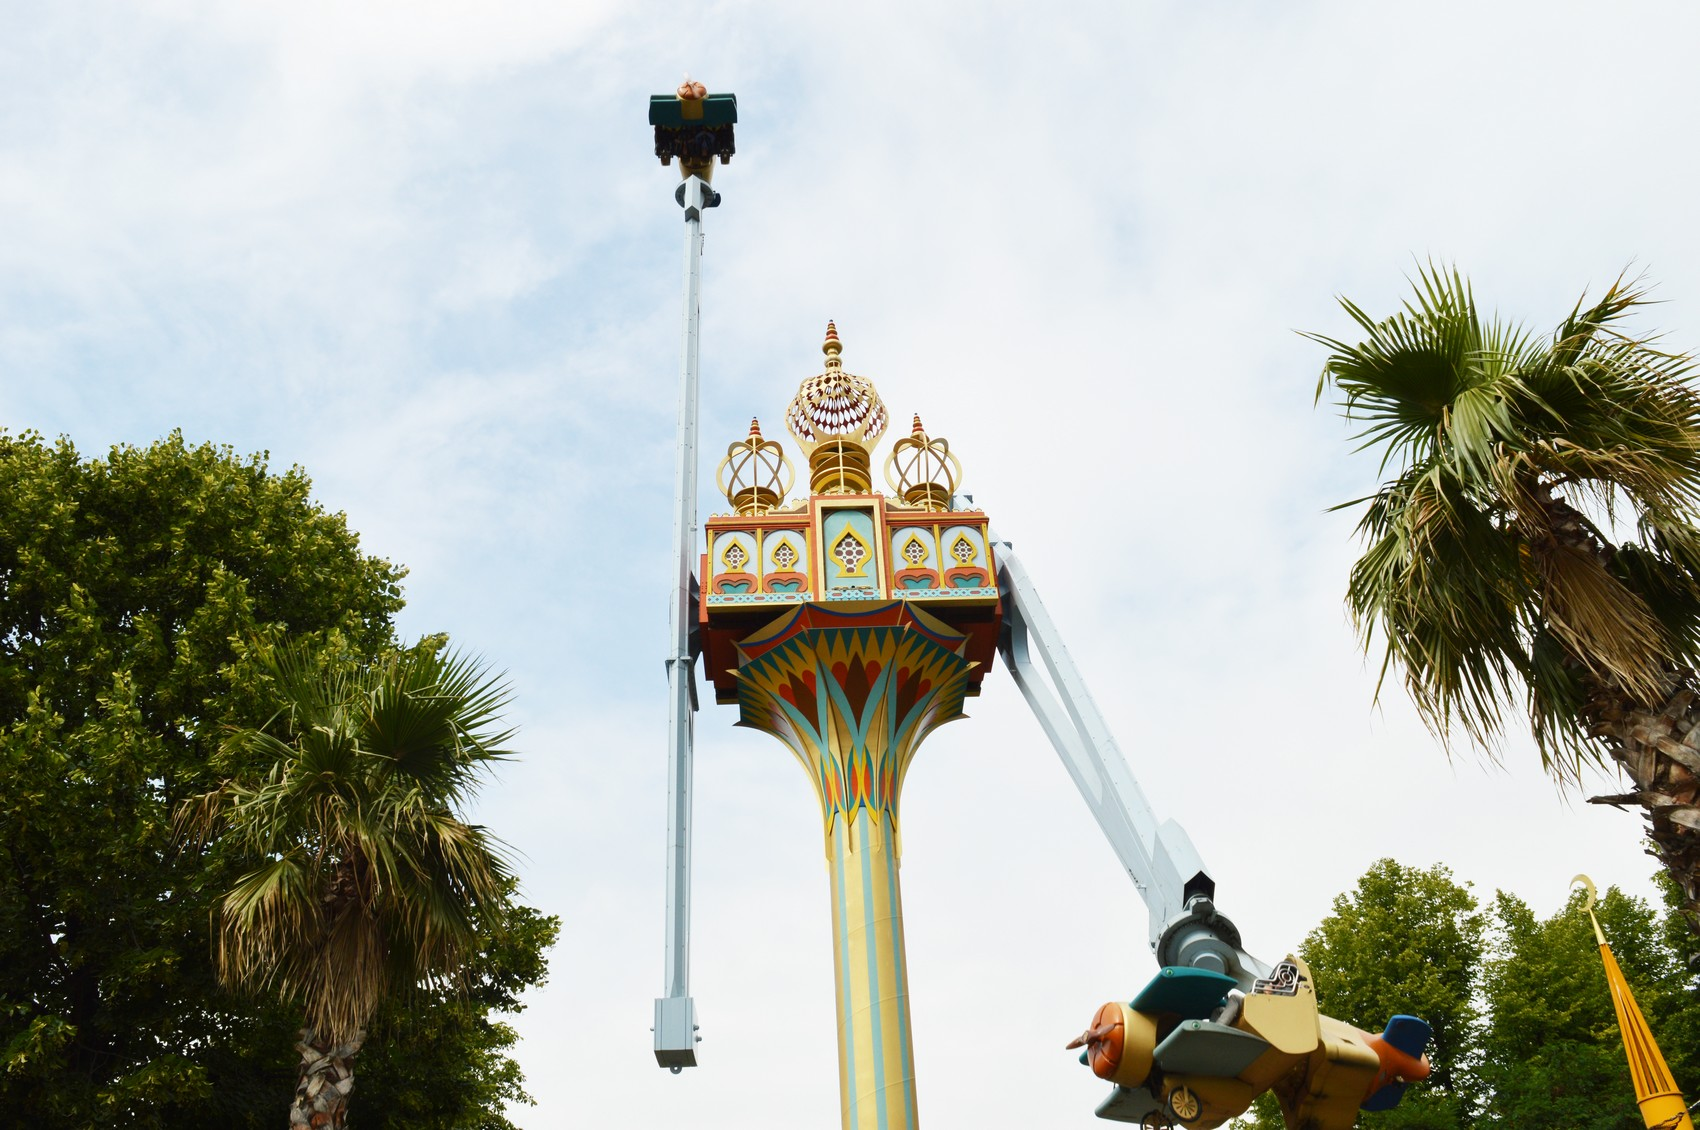 tivoli3-copie